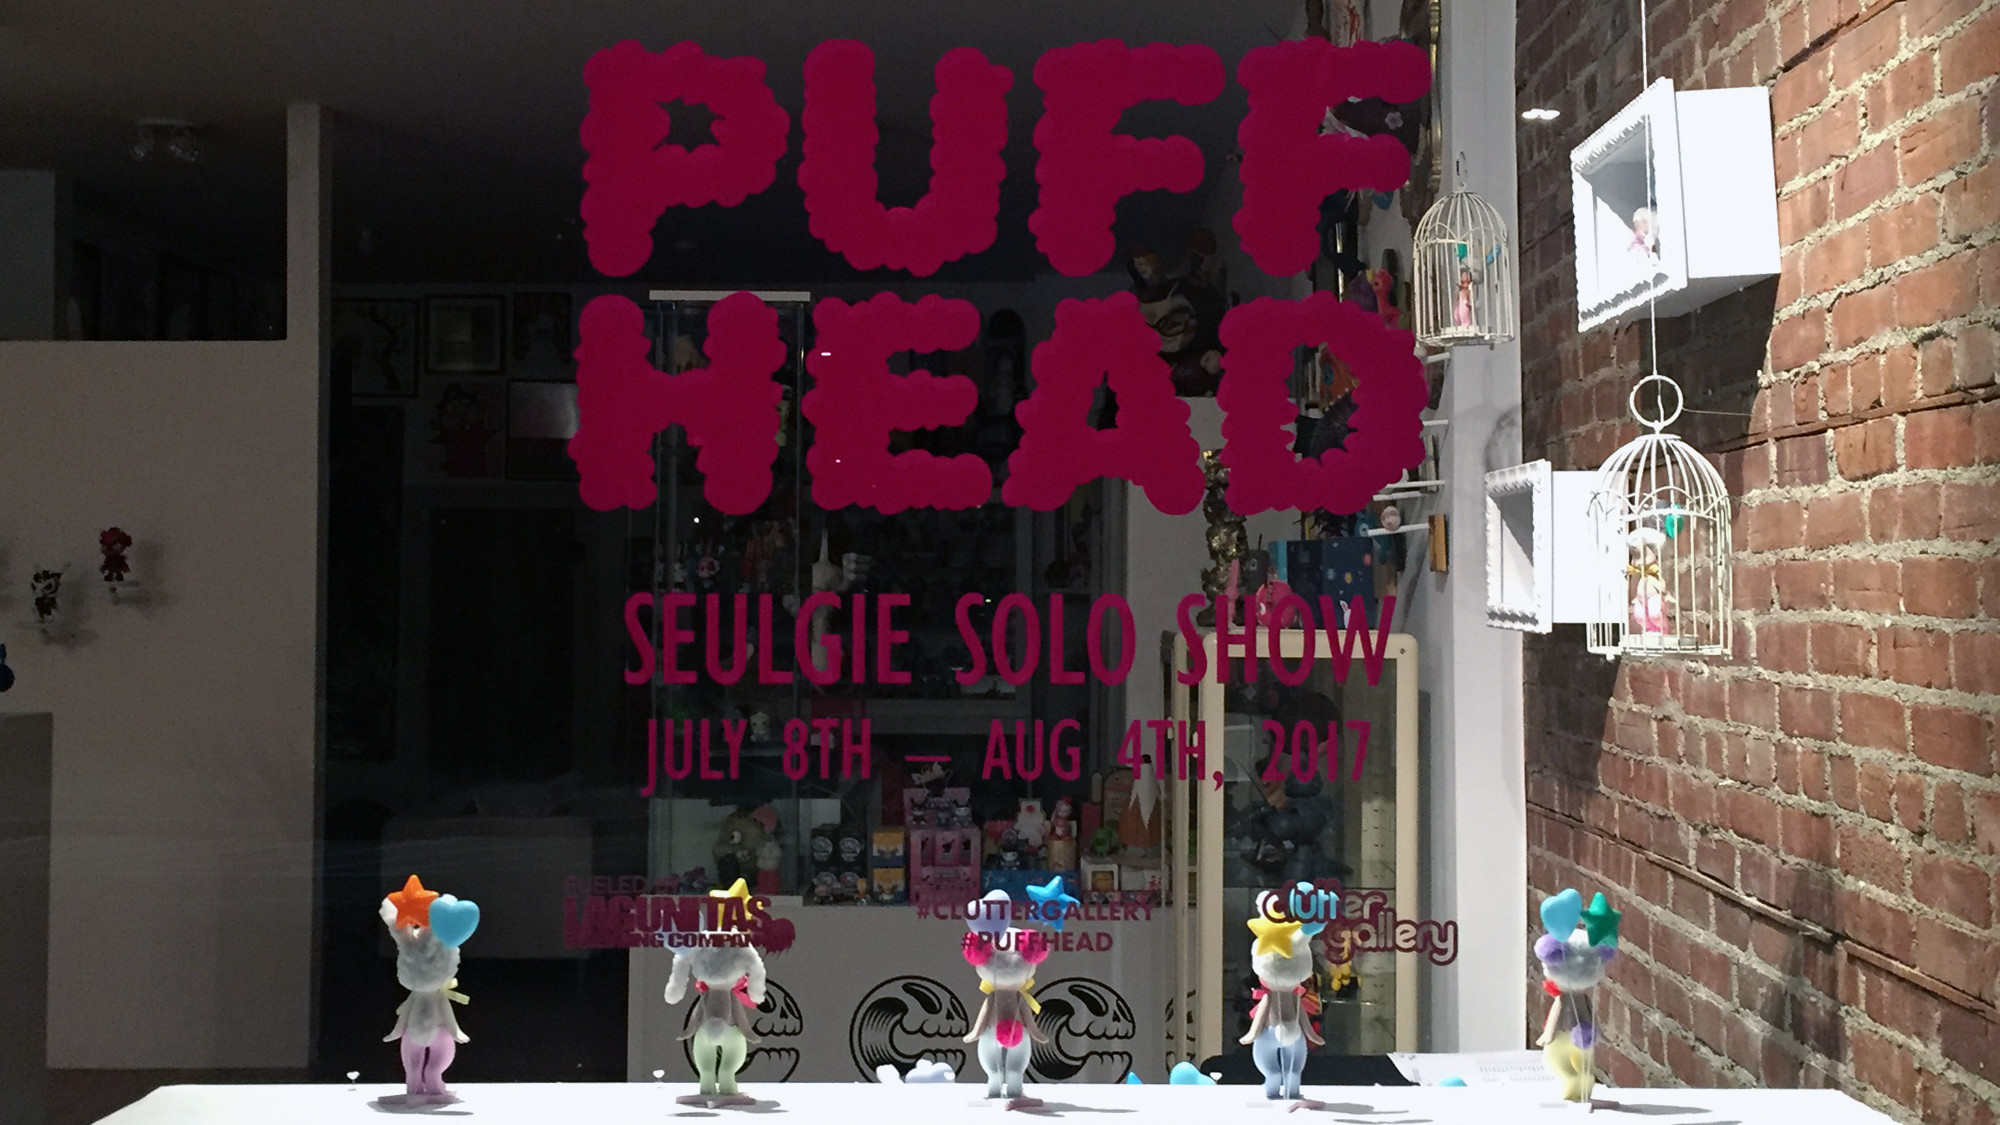 Seulgie's Puff Head (Puffhead) - Window display (outside)